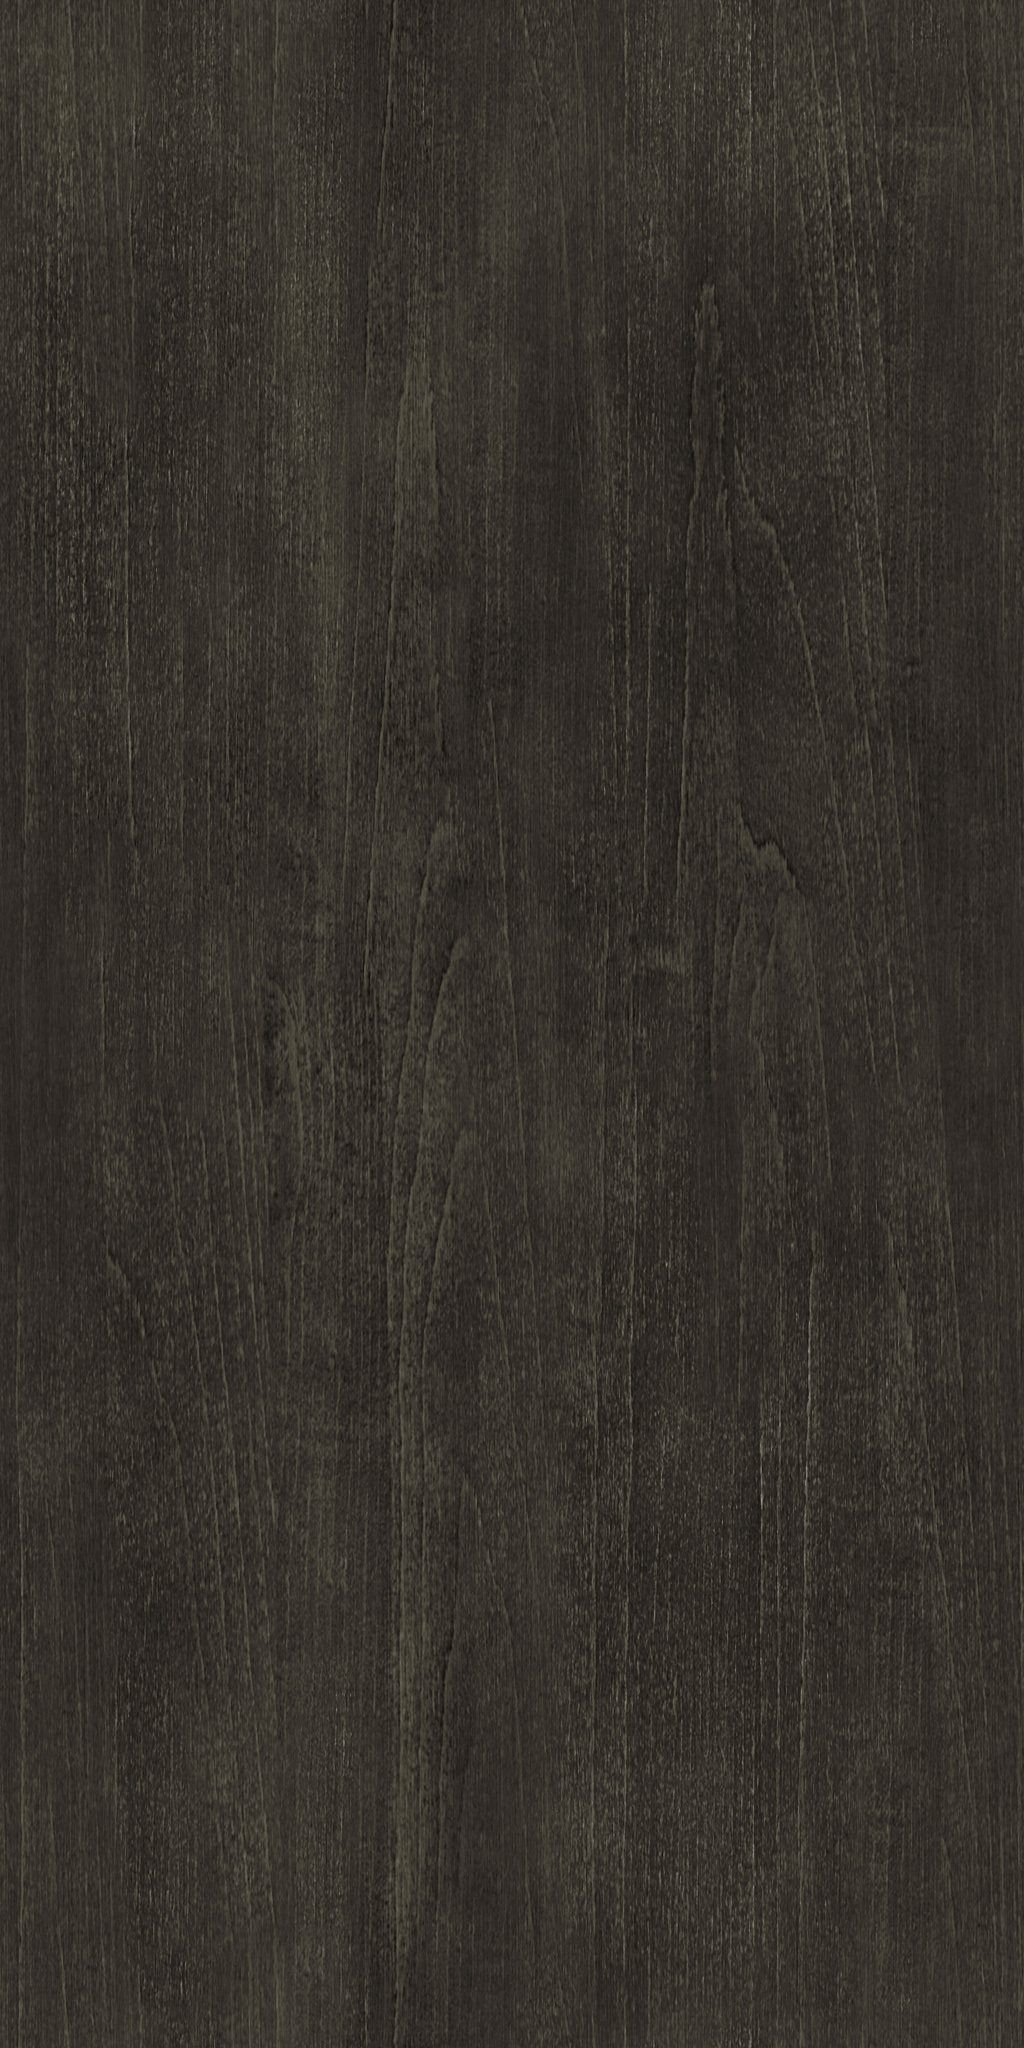 Seamless Dark Wood Floor Texture Ideas 619713 Floor Ideas Design More. Seamless Dark Wood Floor Texture Ideas 619713 Floor Ideas Design